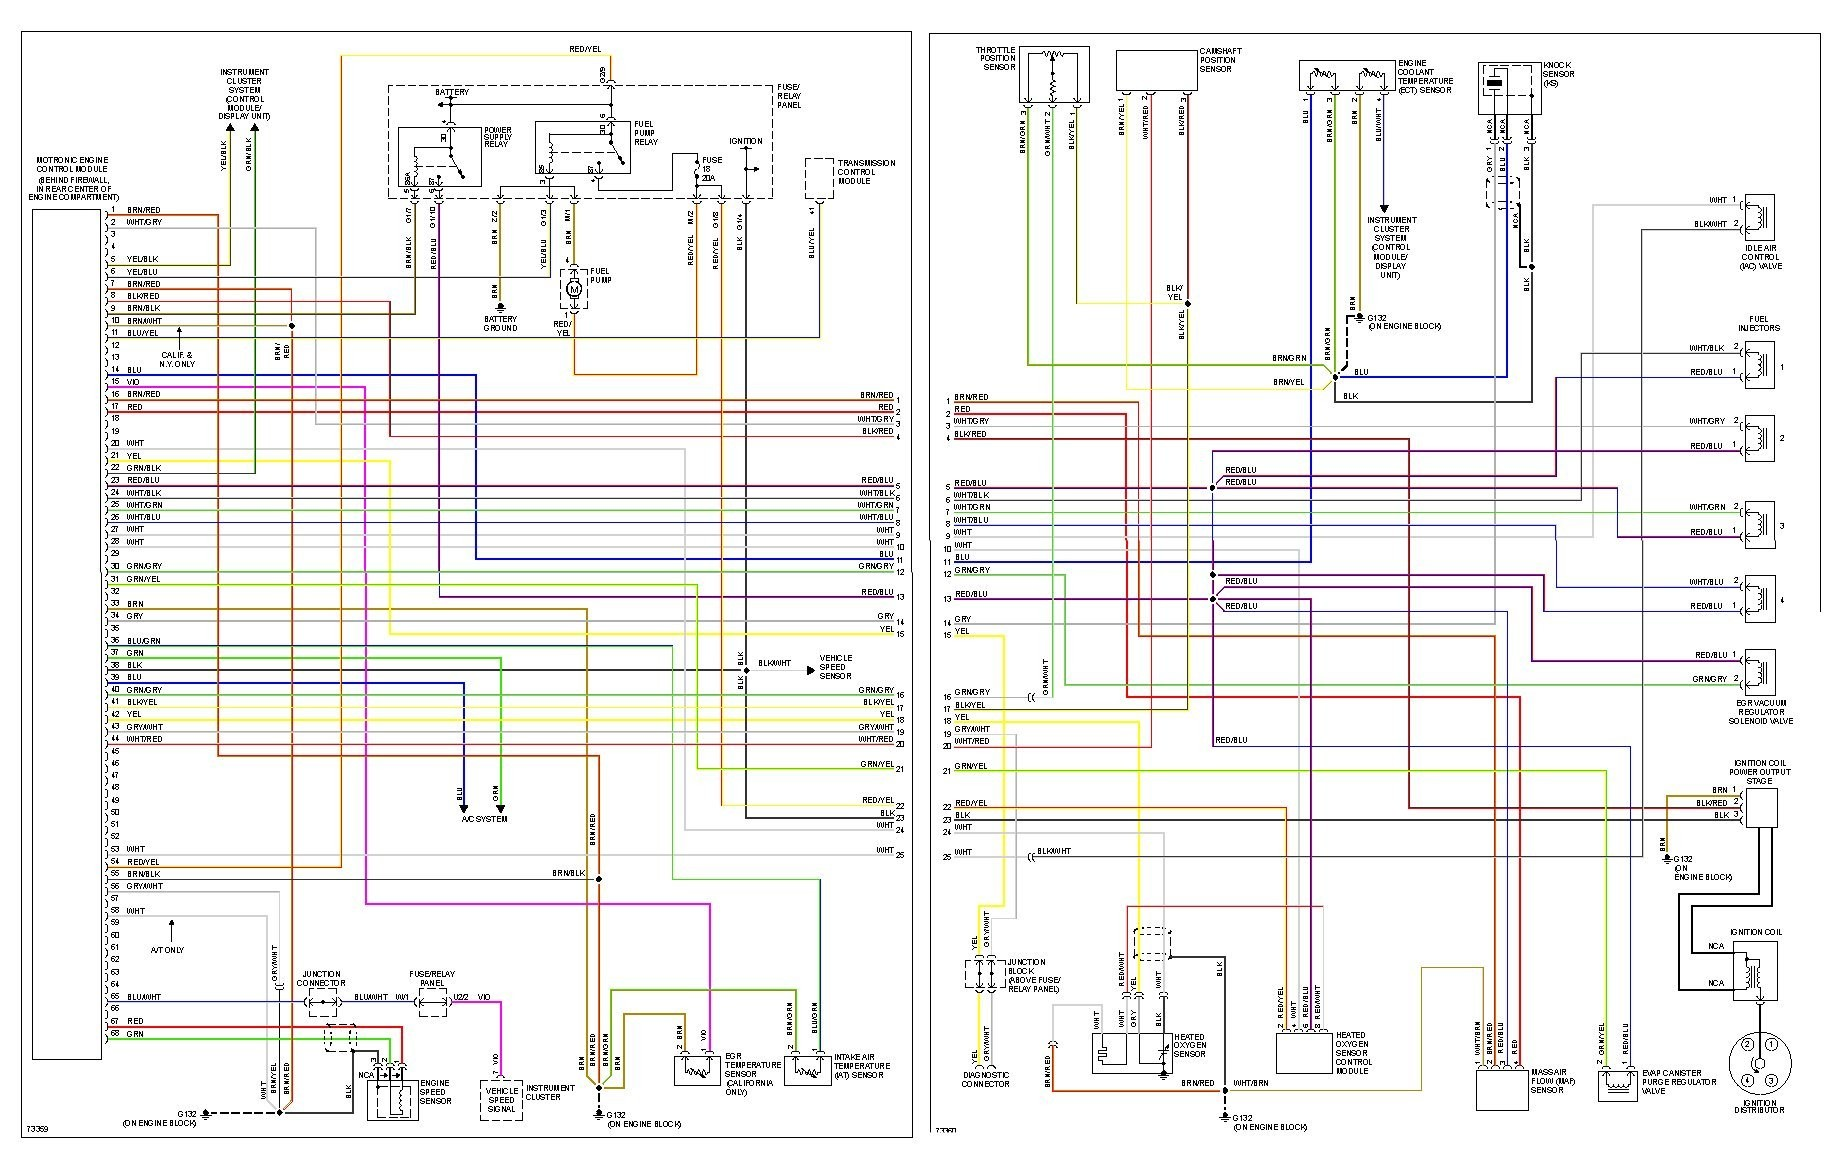 Vw 1 8 T Engine Diagram Vw Golf Wiring Diagram Wiring Diagram Of Vw 1 8 T Engine Diagram